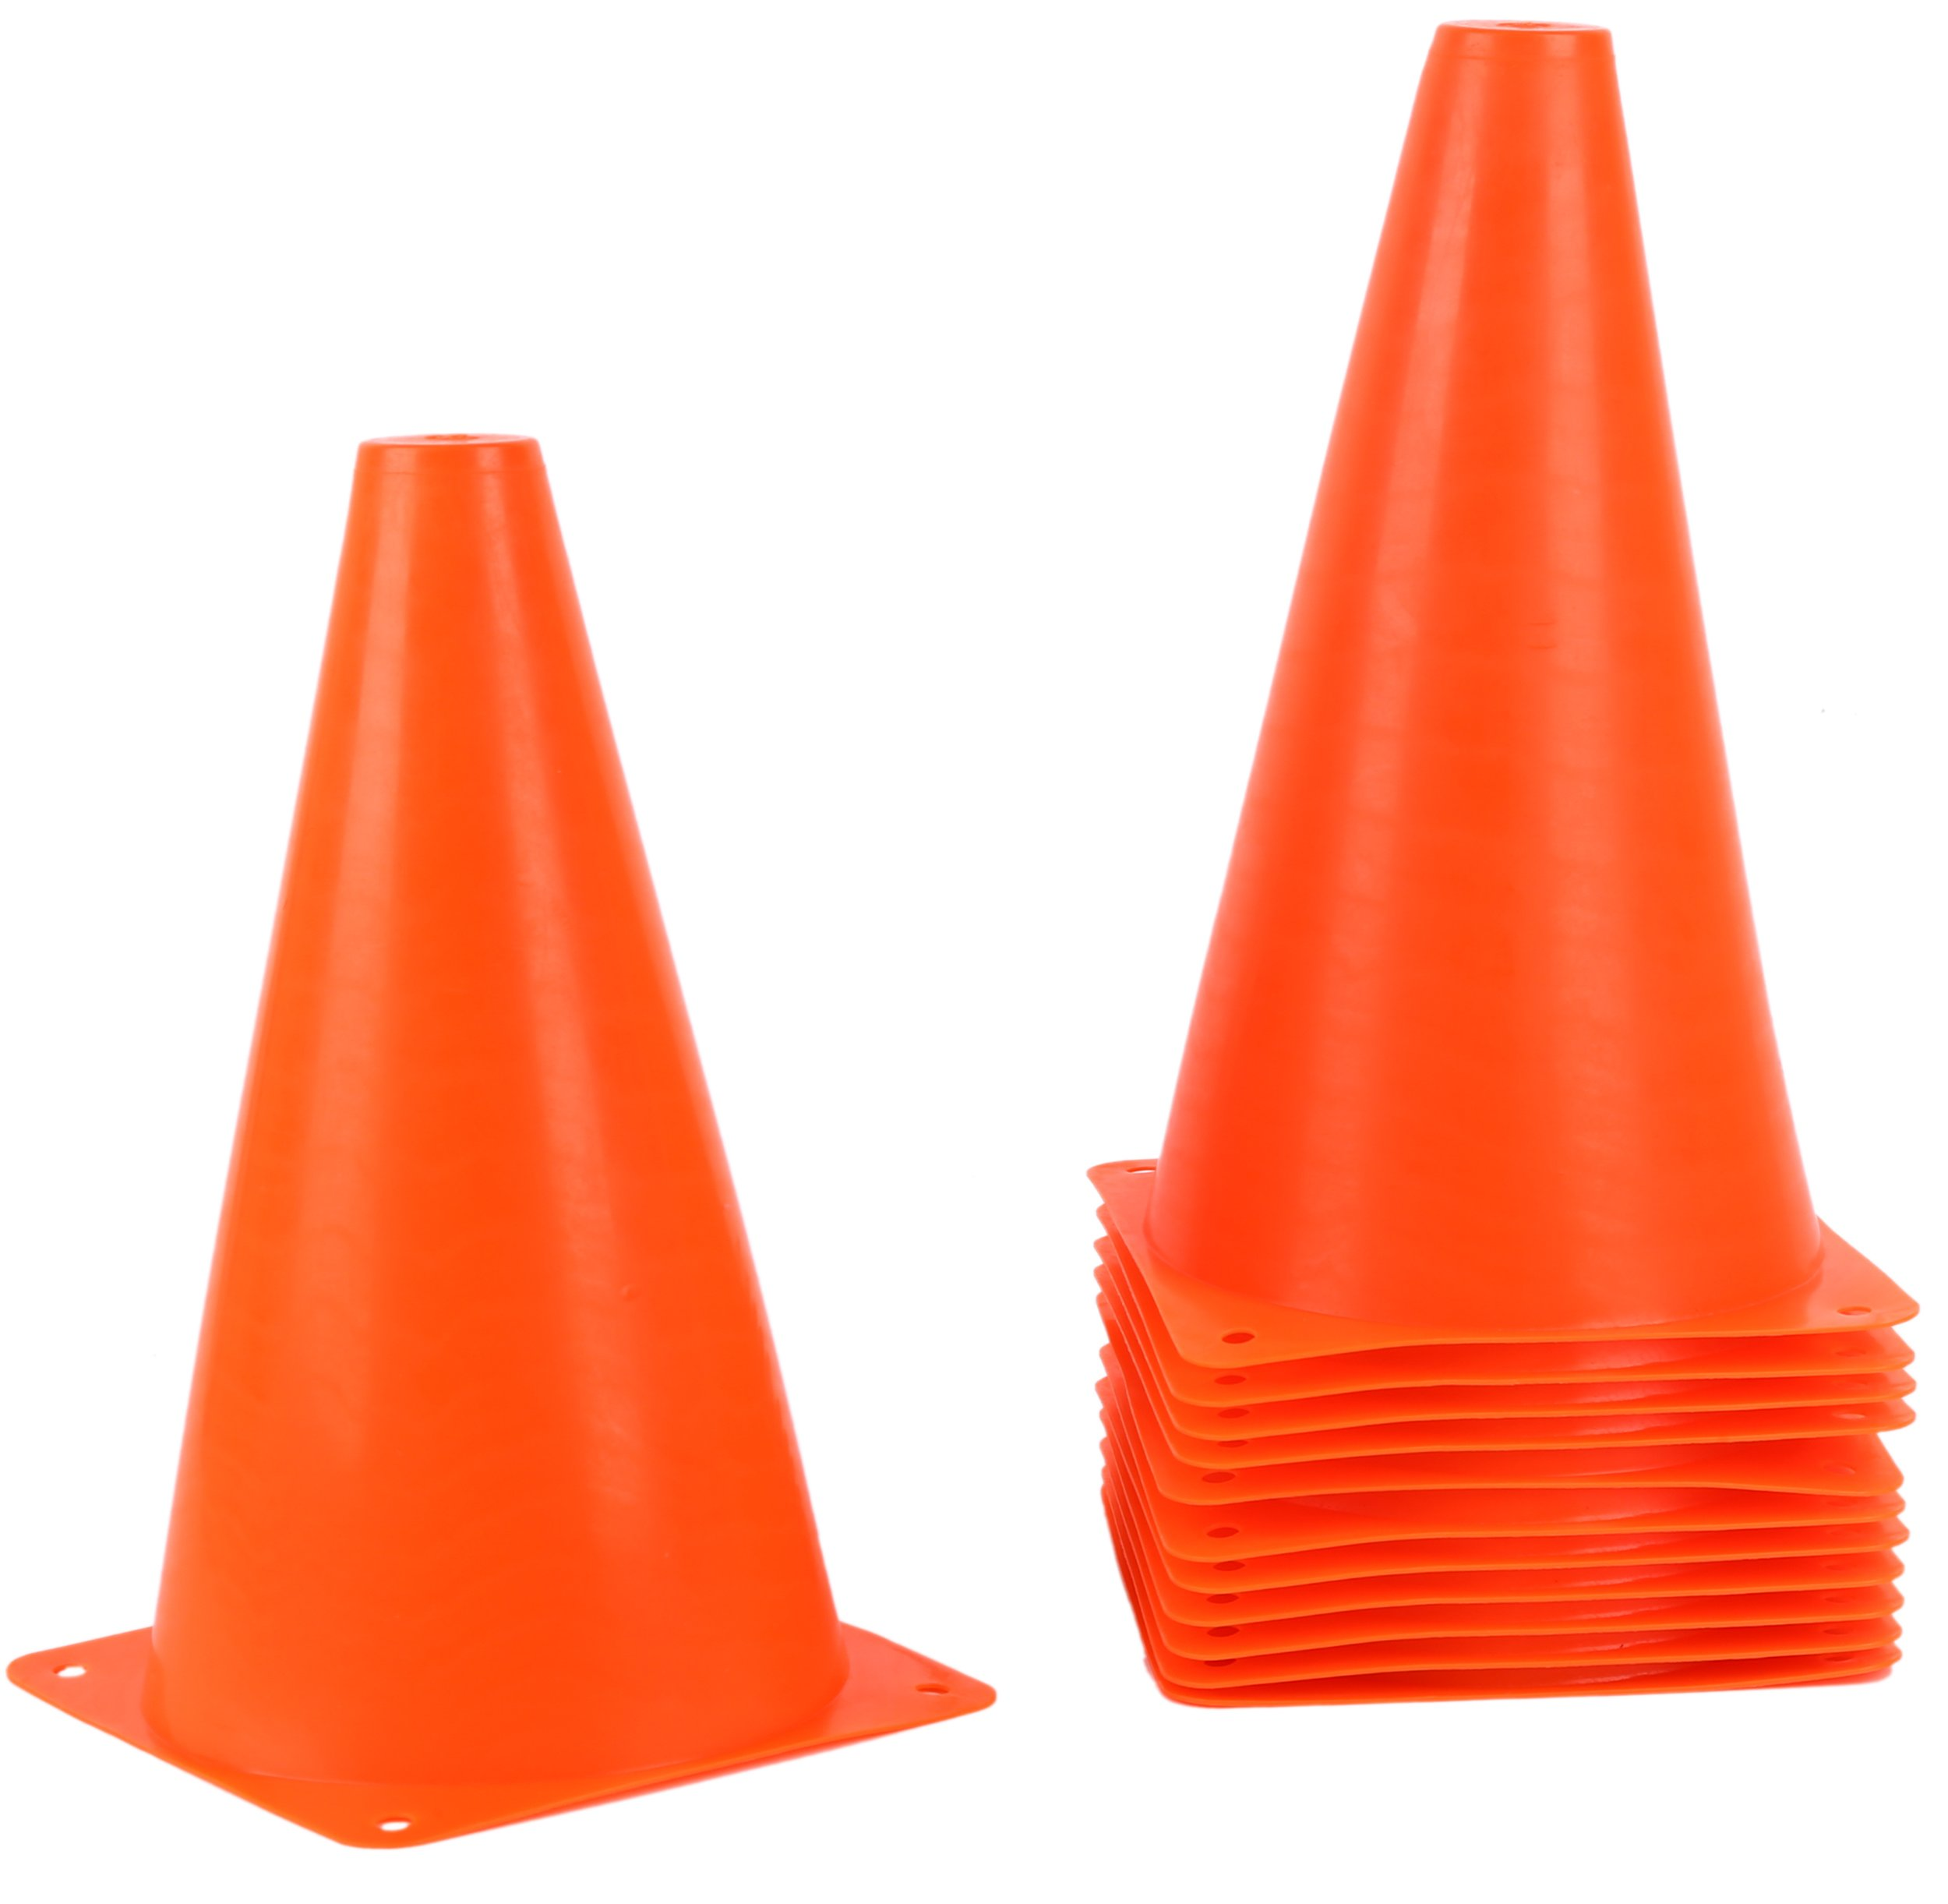 Juvale 9 Inch Orange Plastic Sports Safety Parking Cones (12 Pack)